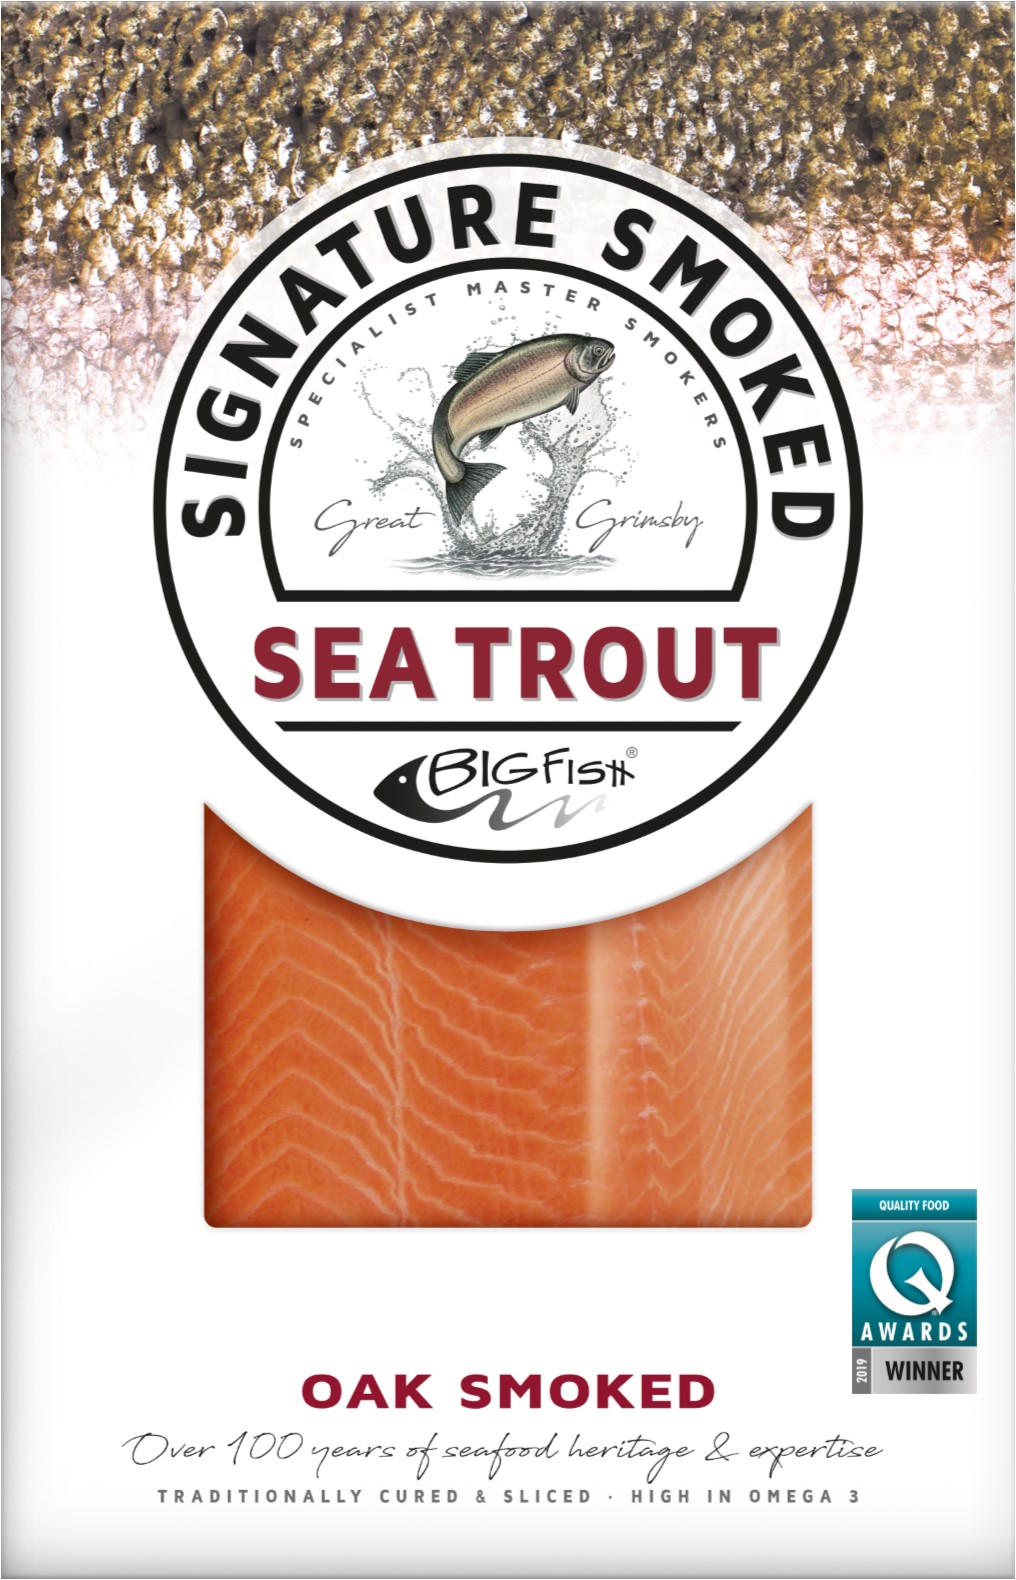 Signature Smoked Sea Trout